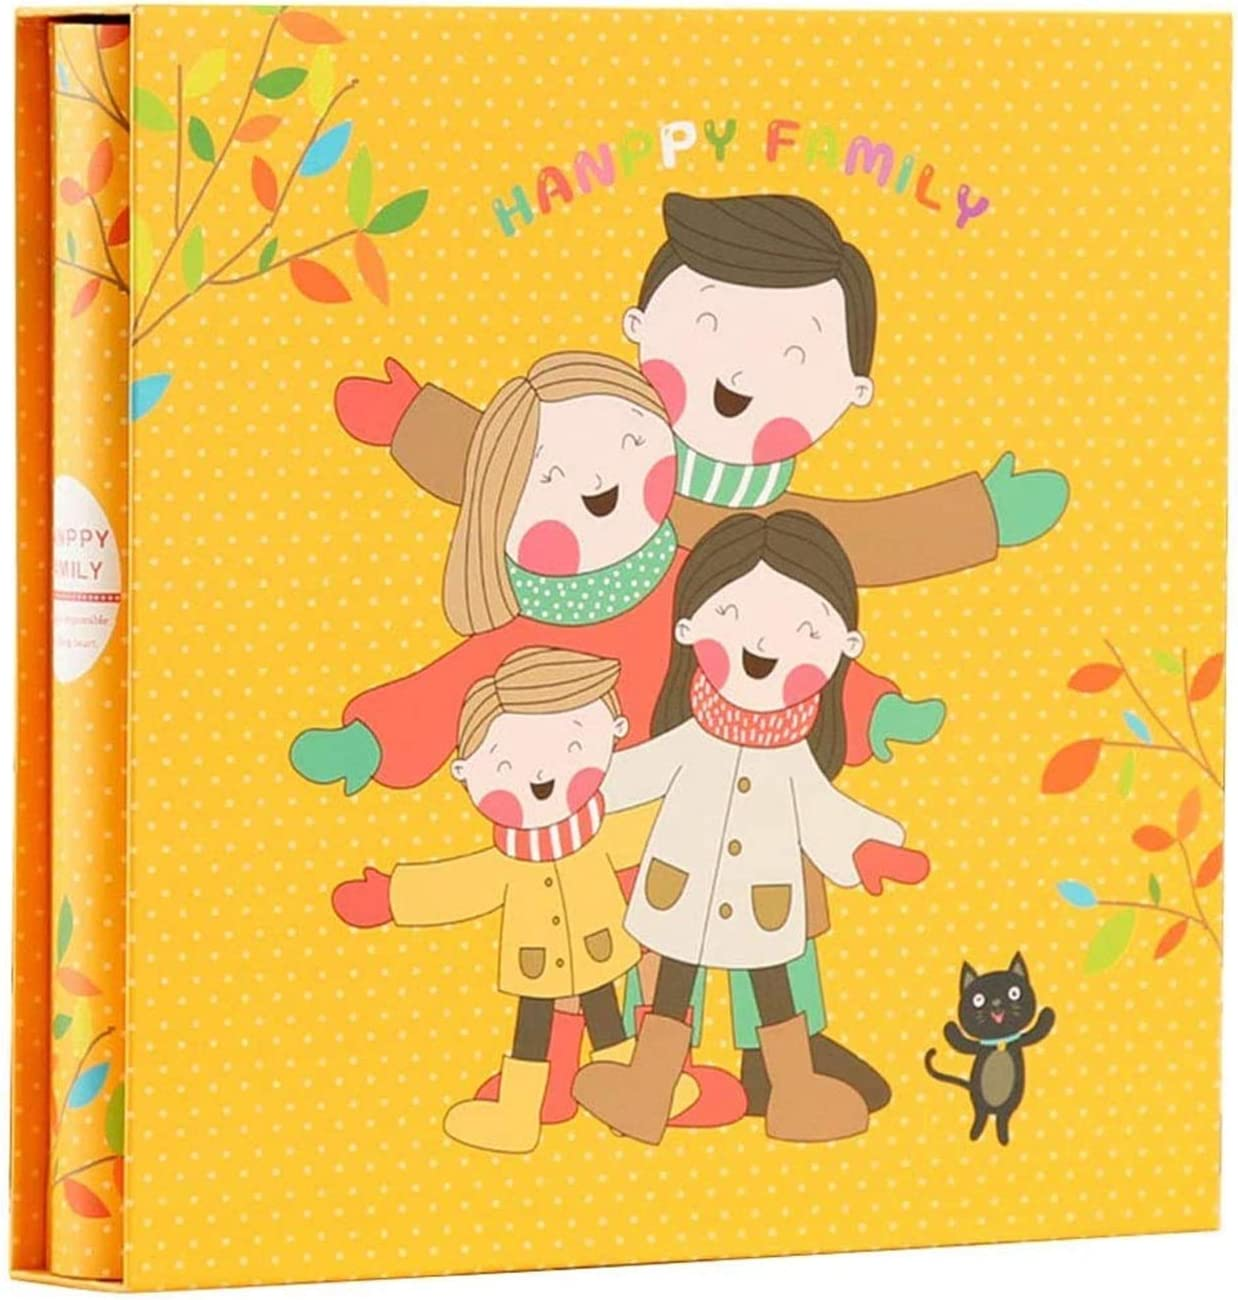 DSWHM 4 years warranty Large Capacity Family Picture Max 54% OFF Albums 5inch Photo Album 800